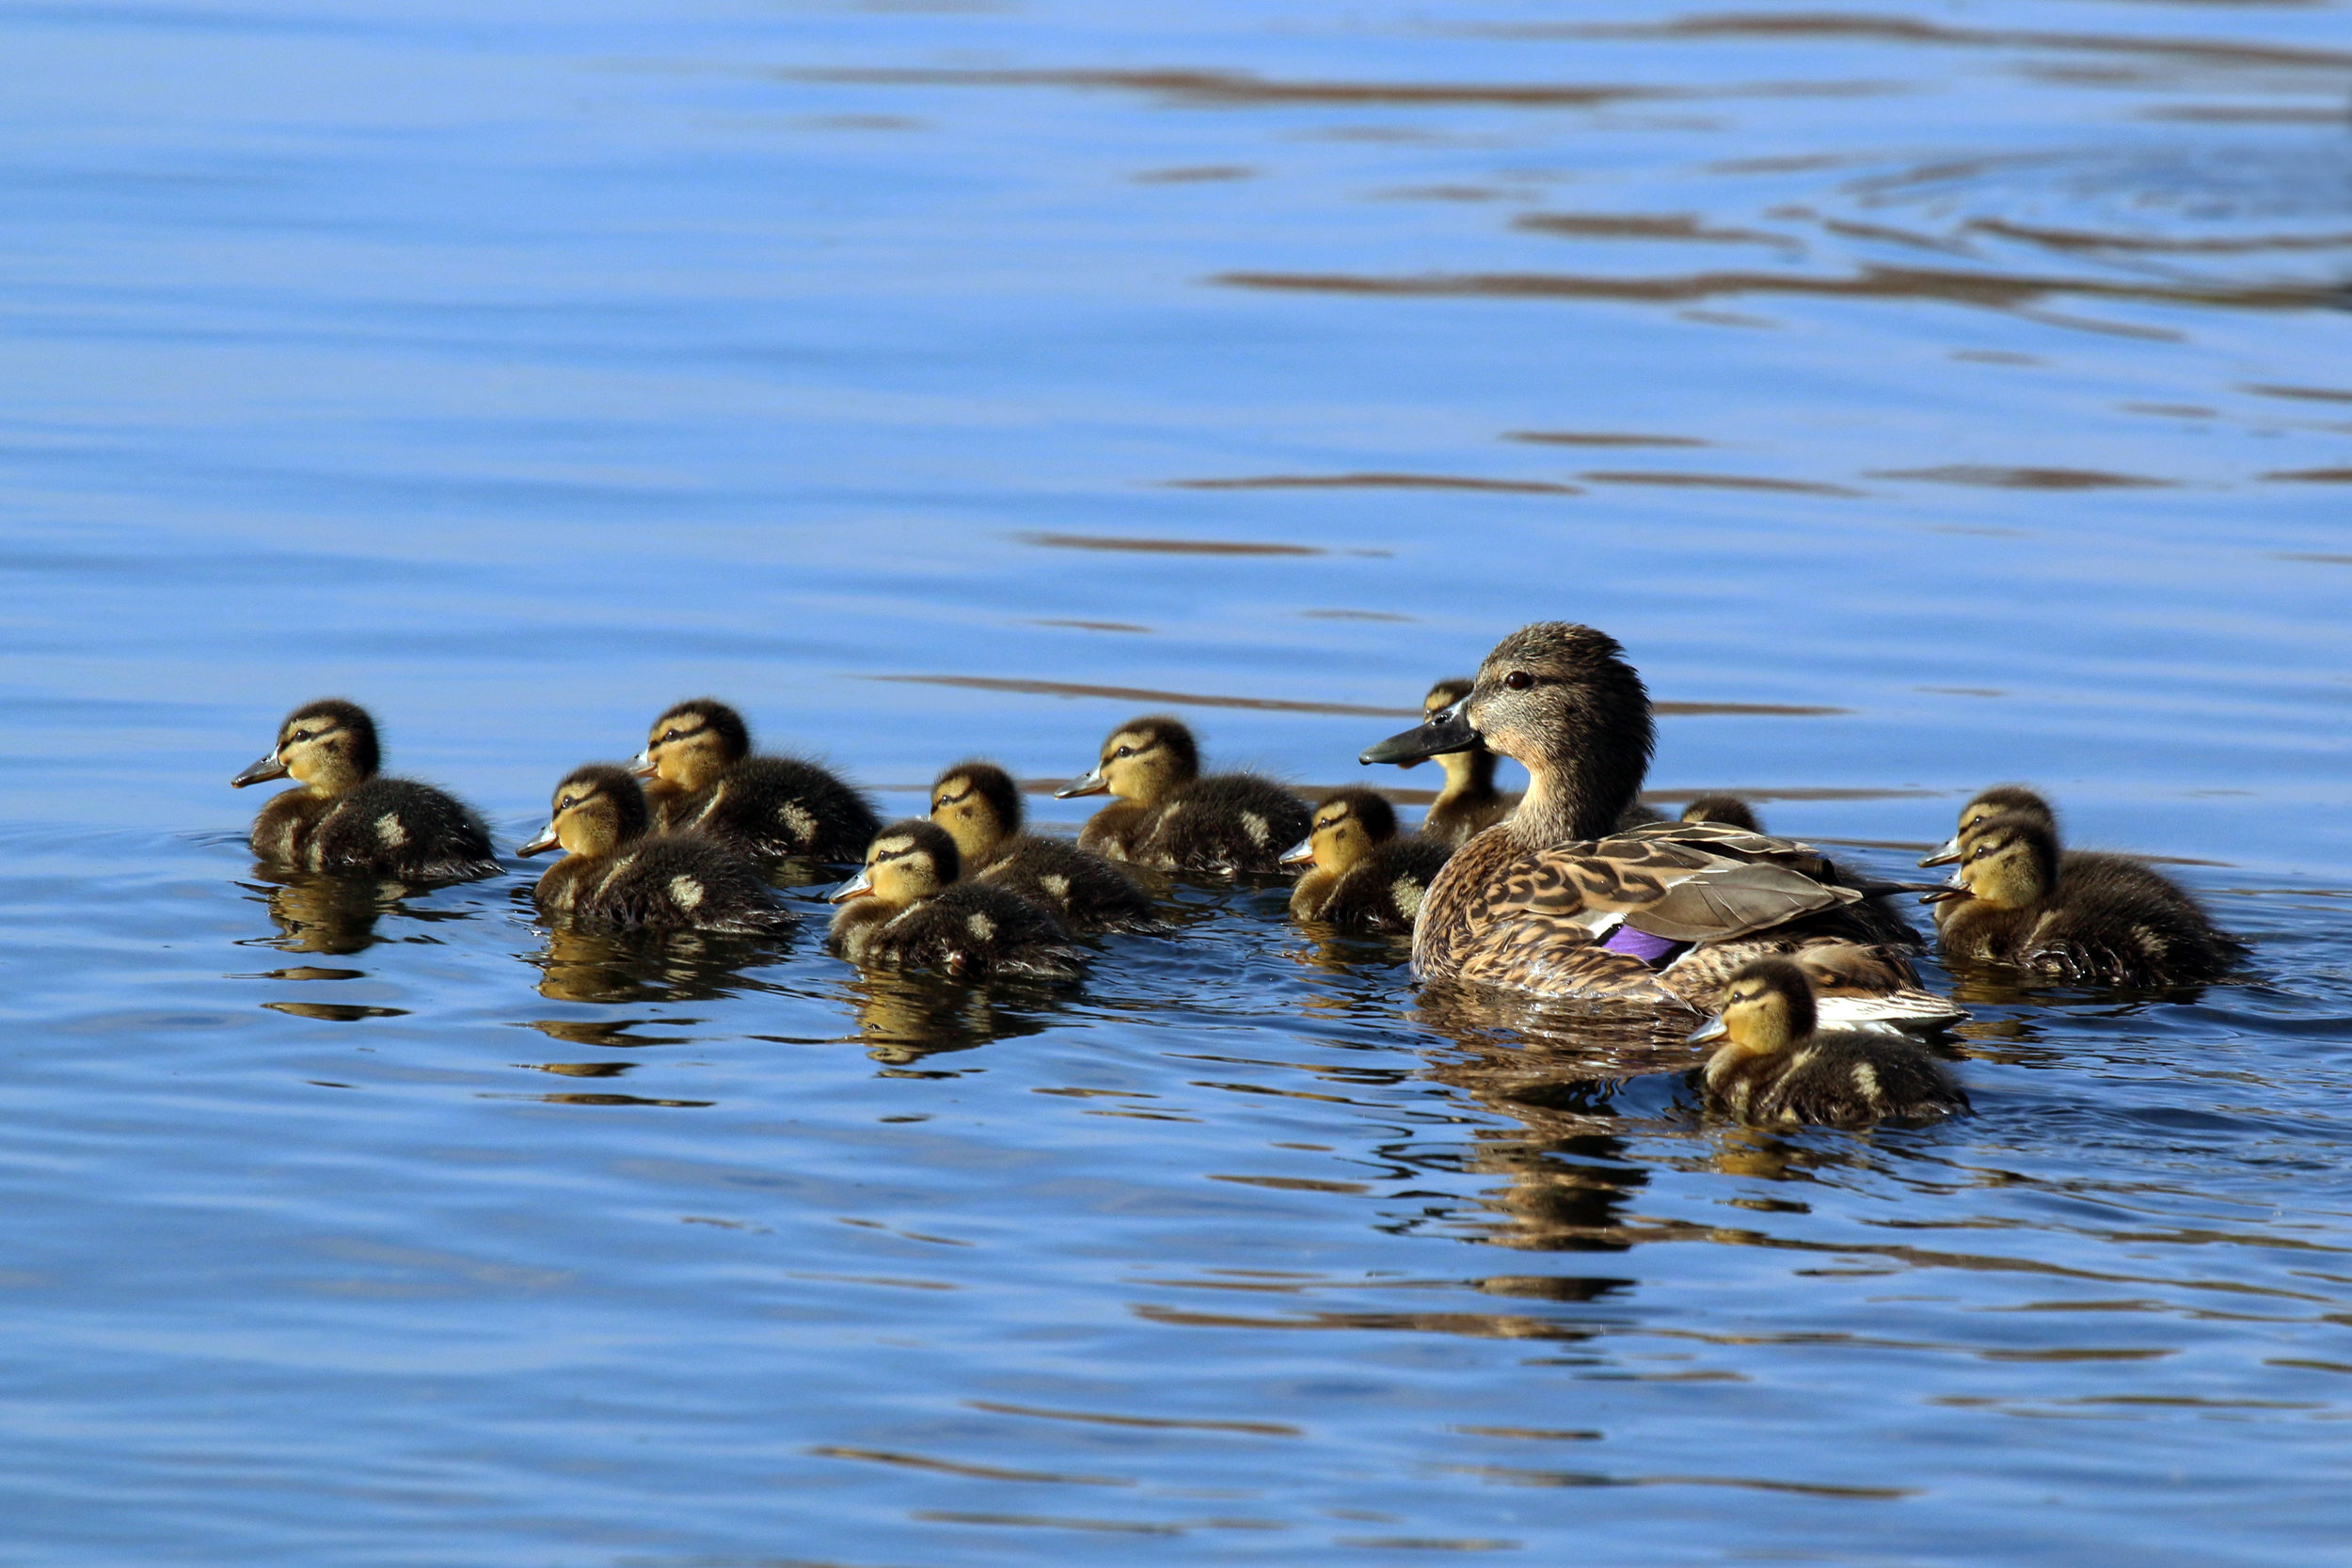 A mother duck and her ducklings.